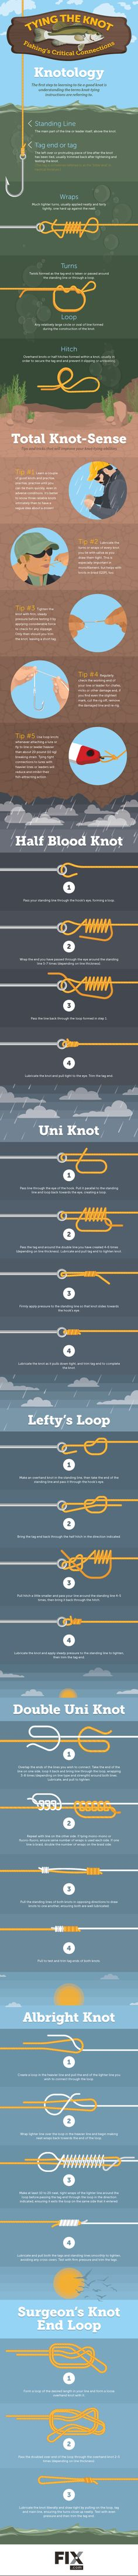 If fishing is on your camping itinerary, here's a comprehensive list of useful knots to learn